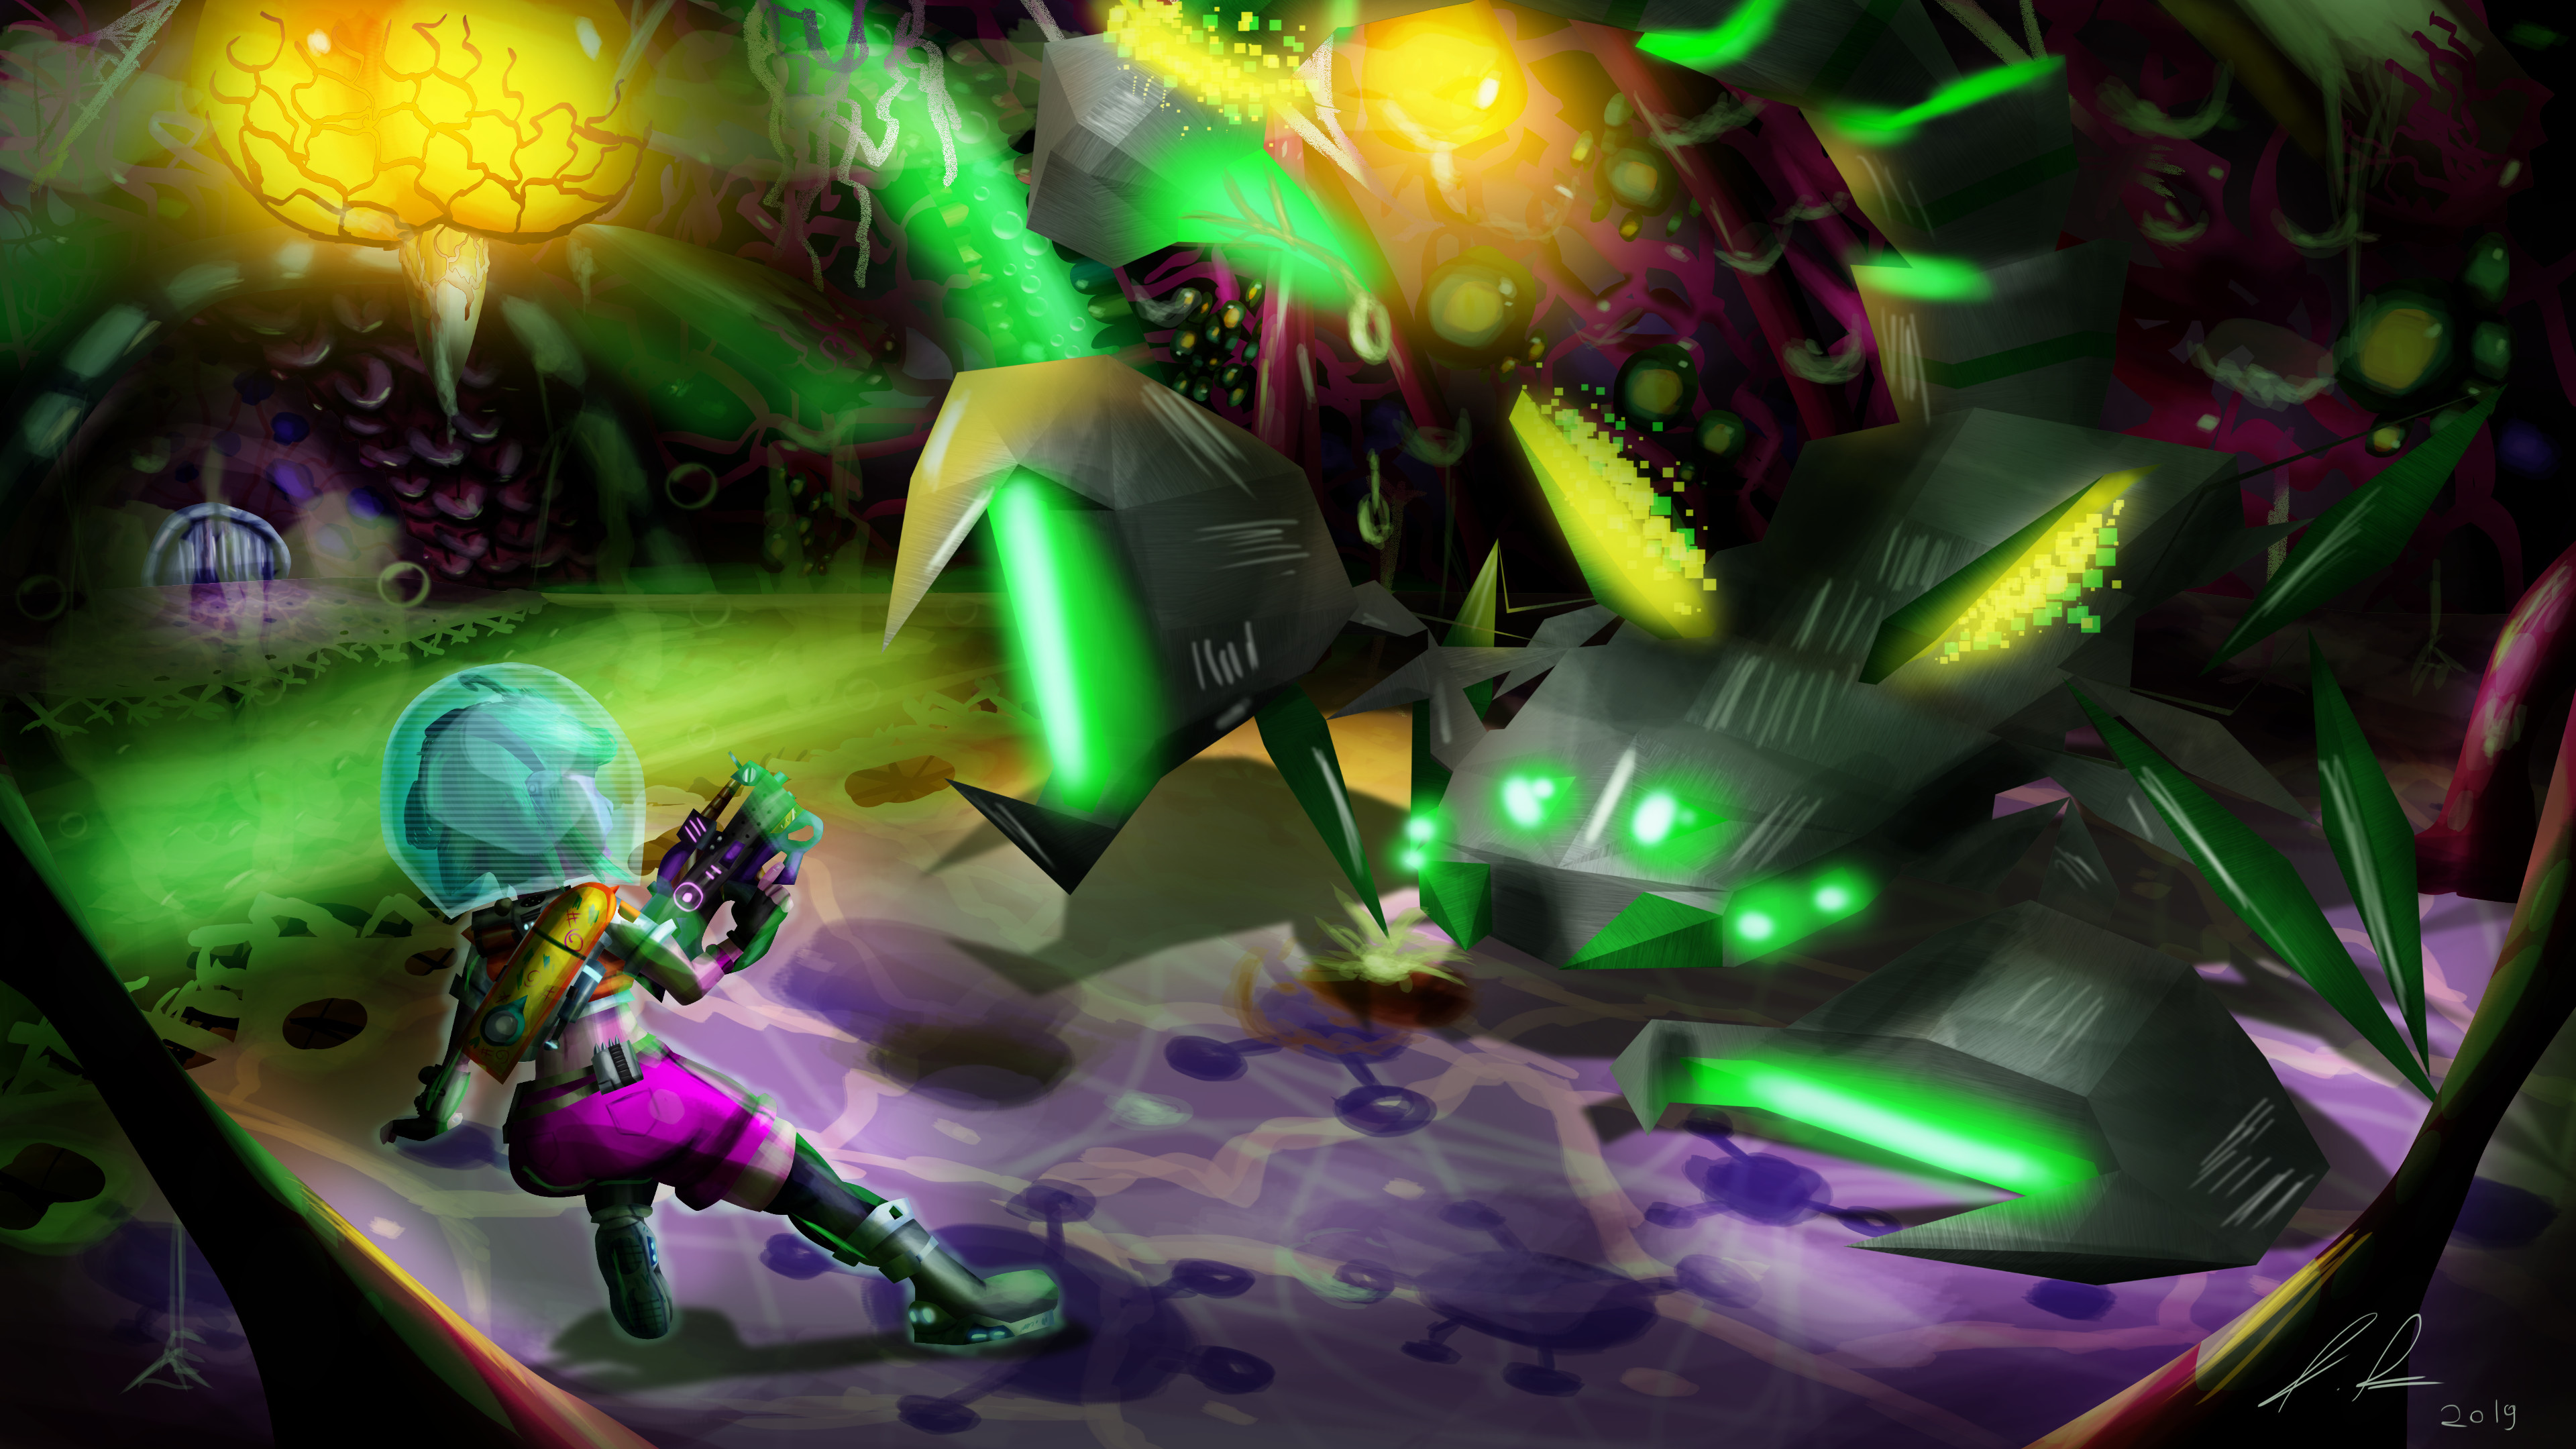 Fighting a giant polygonal scorpion inside the stomach of some alien monster.